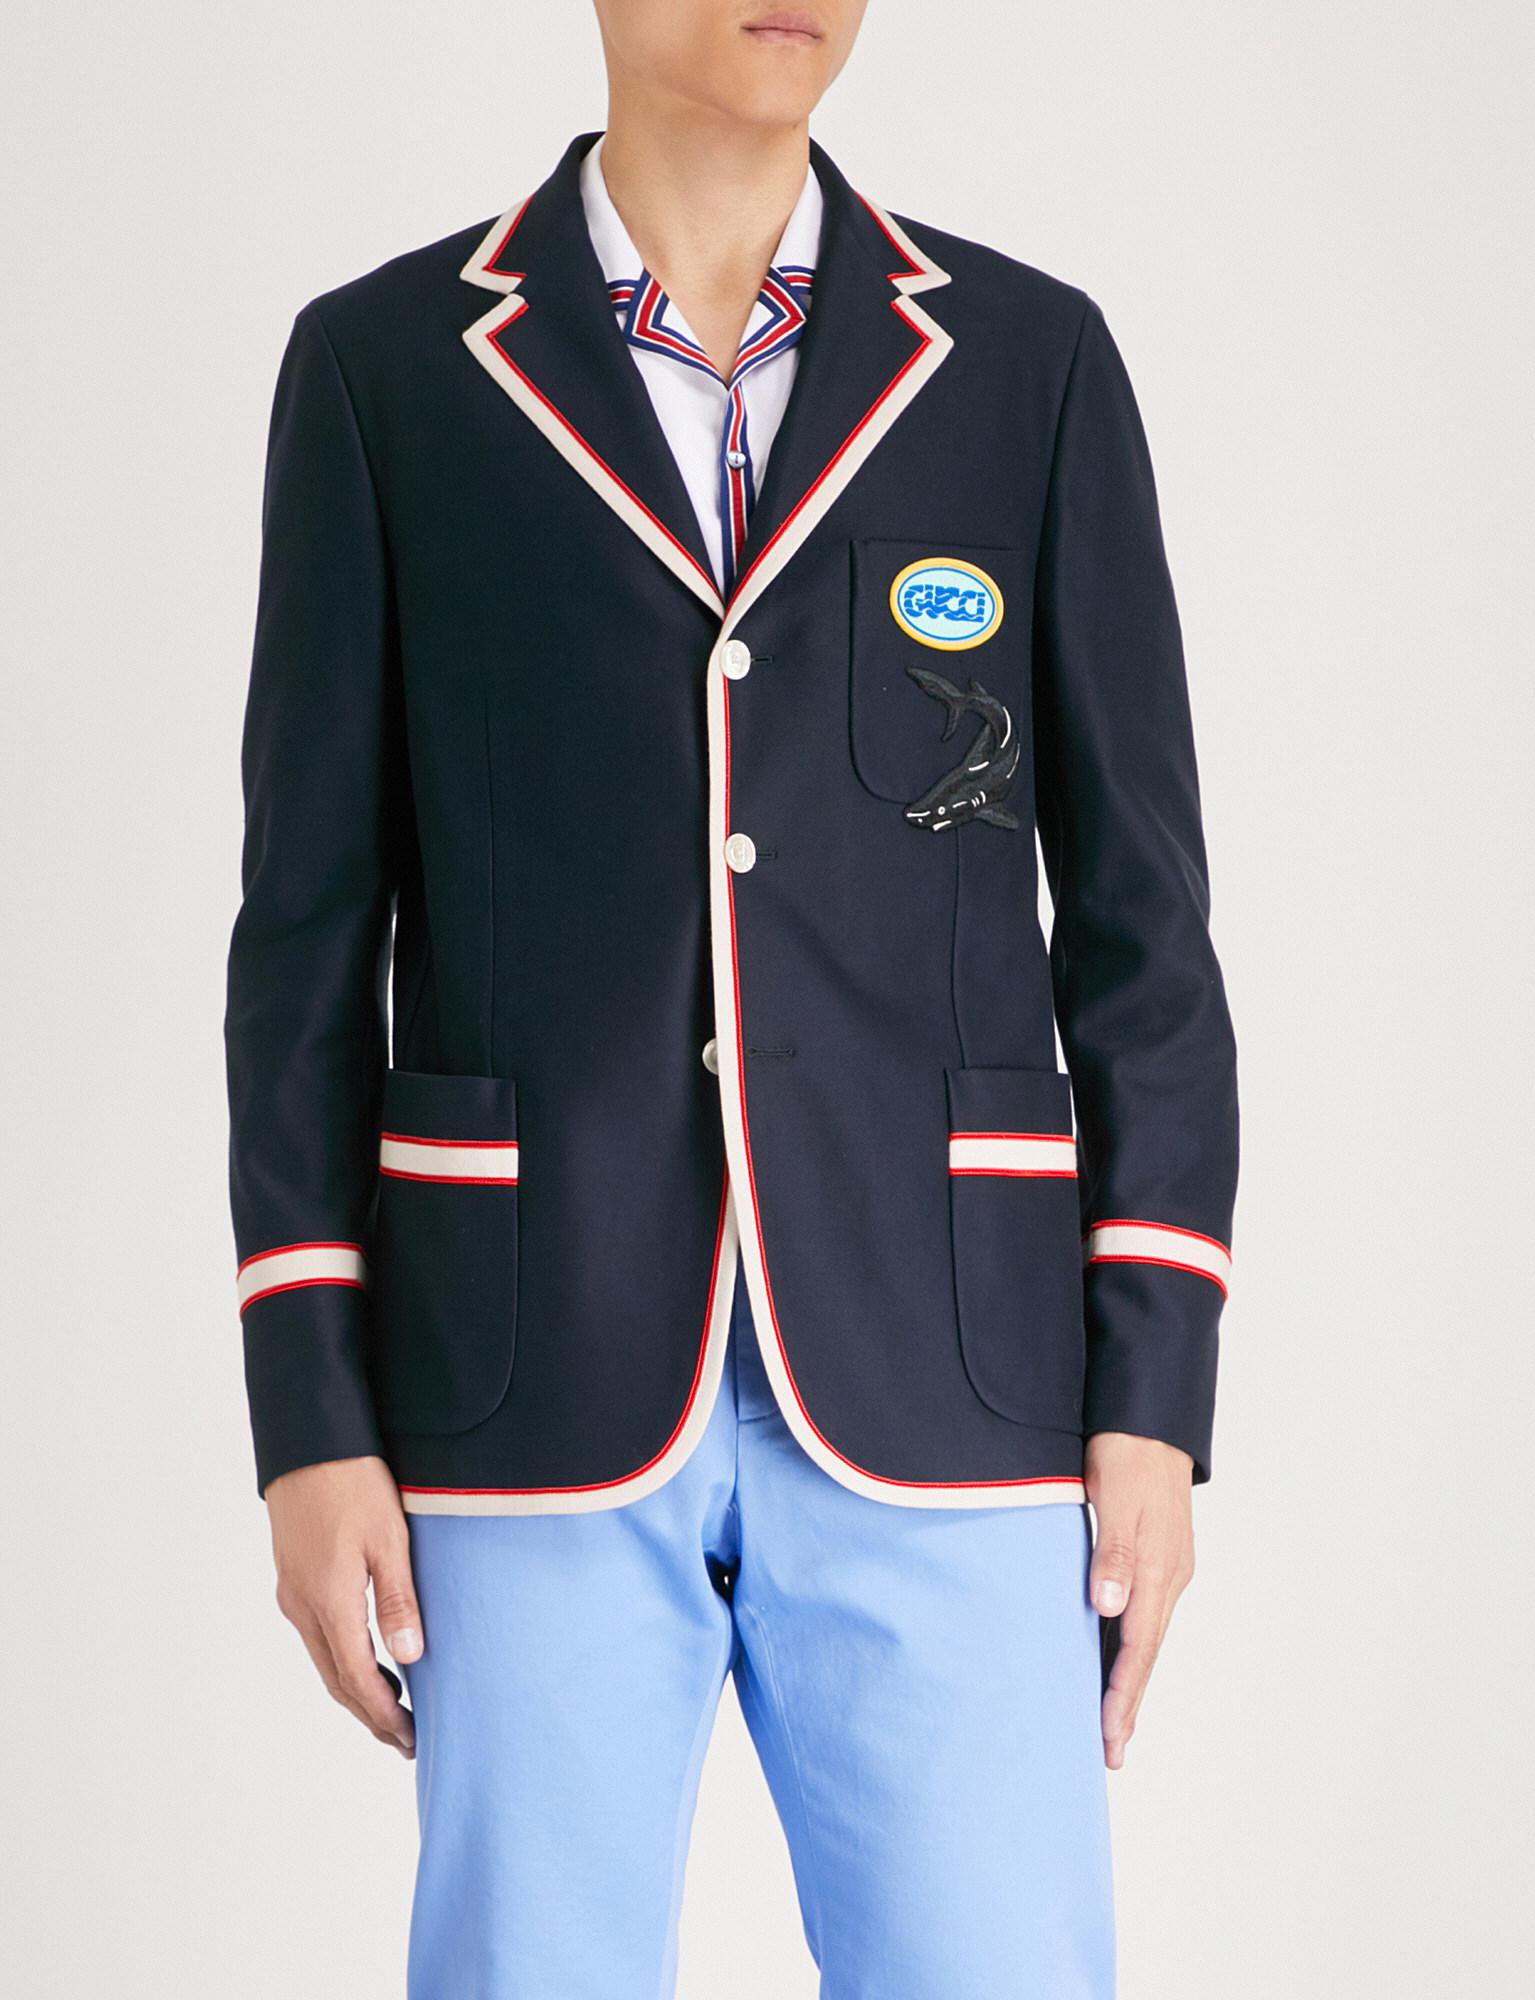 0609daad3 Lyst - Gucci Cotton Jacket With Pool Patch in Blue for Men - Save 10%